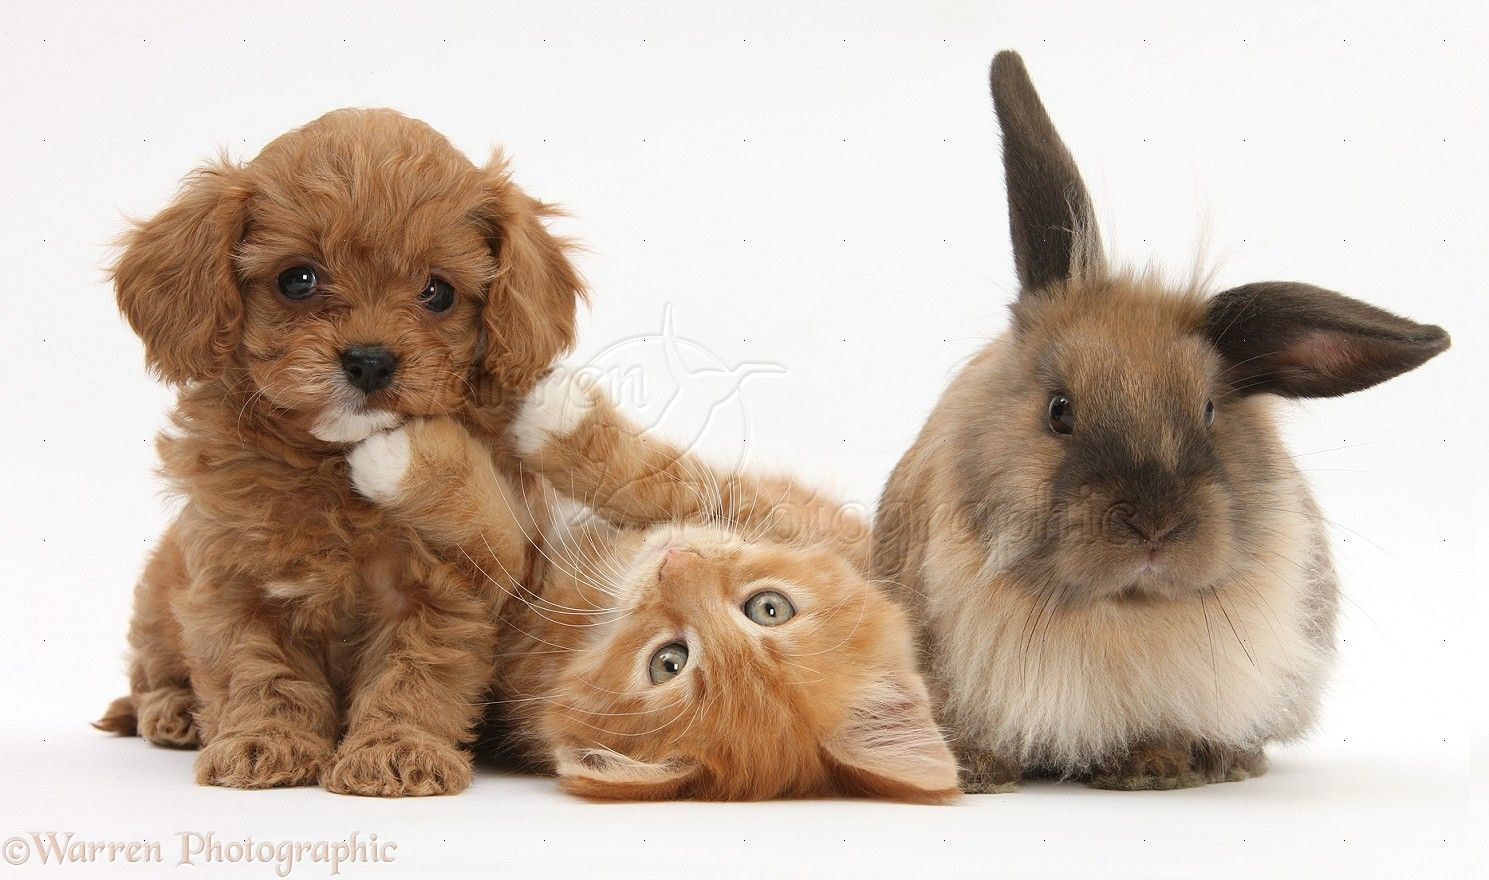 cute puppies and kittens - Google Search | cute and more ...